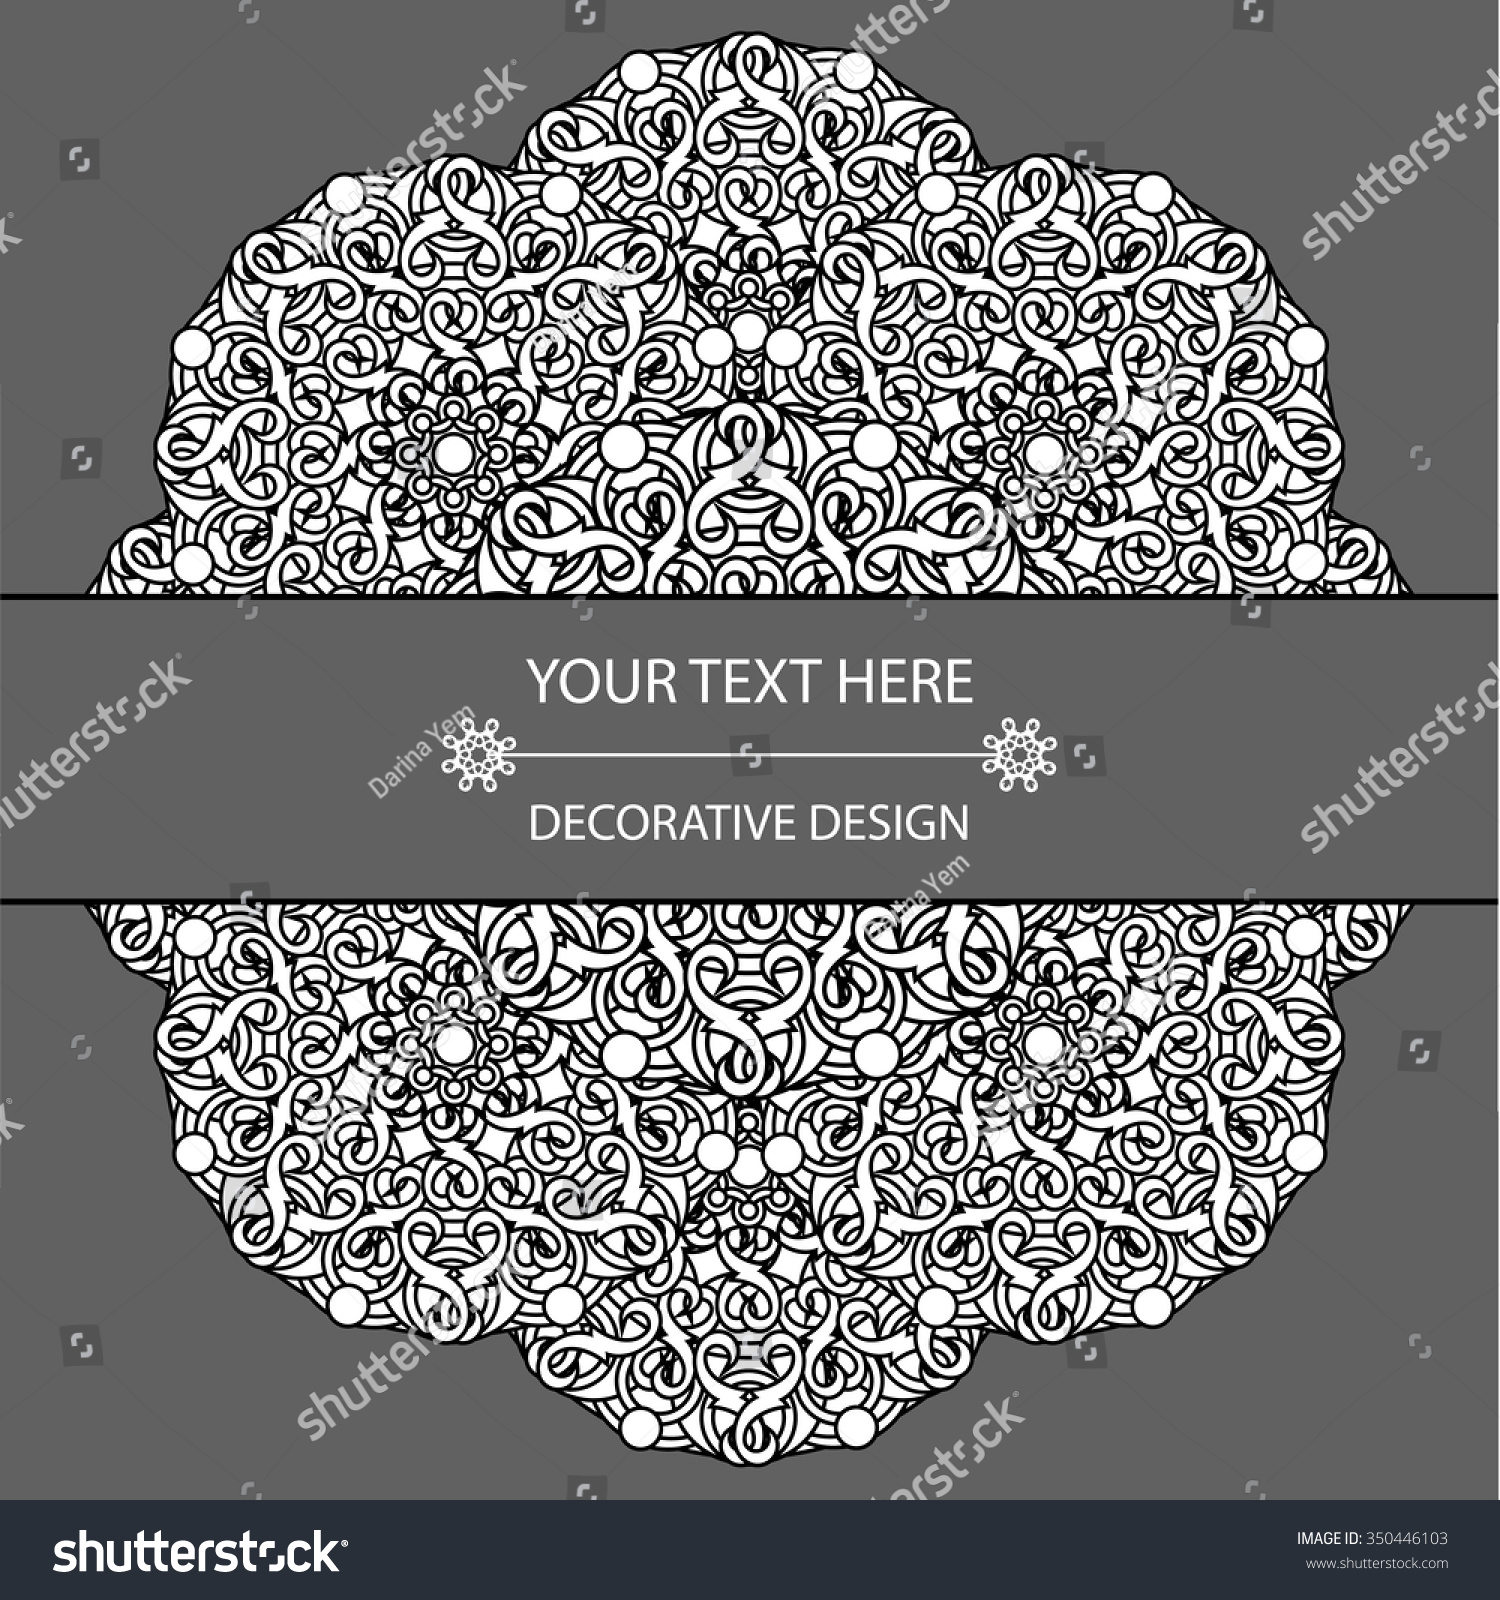 template business card invitation circular patterns stock vector